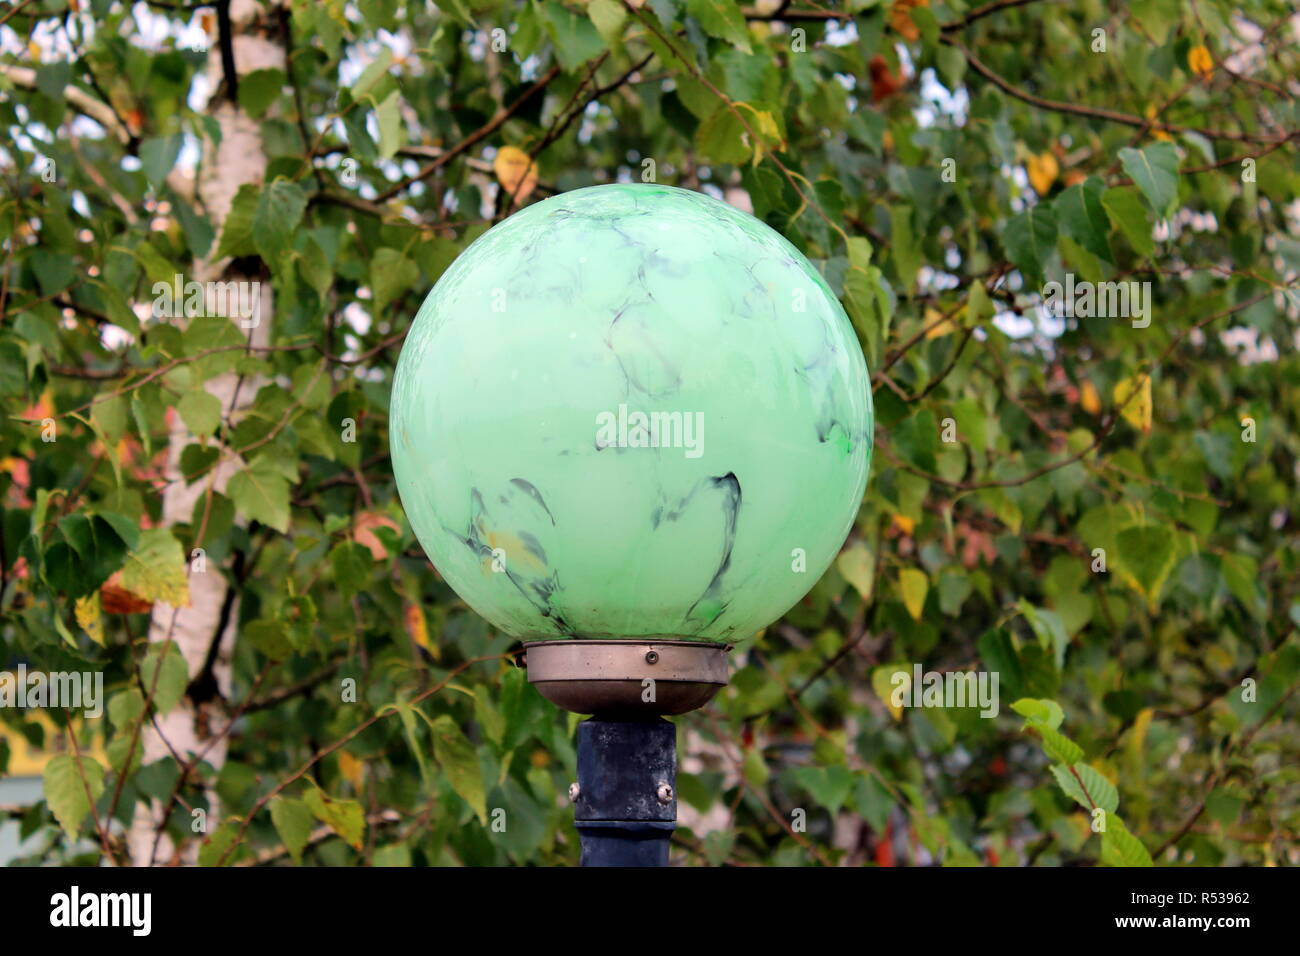 Light green marble like texture round street lamp mounted on metal pole on fresh green leaves background on warm summer day - Stock Image